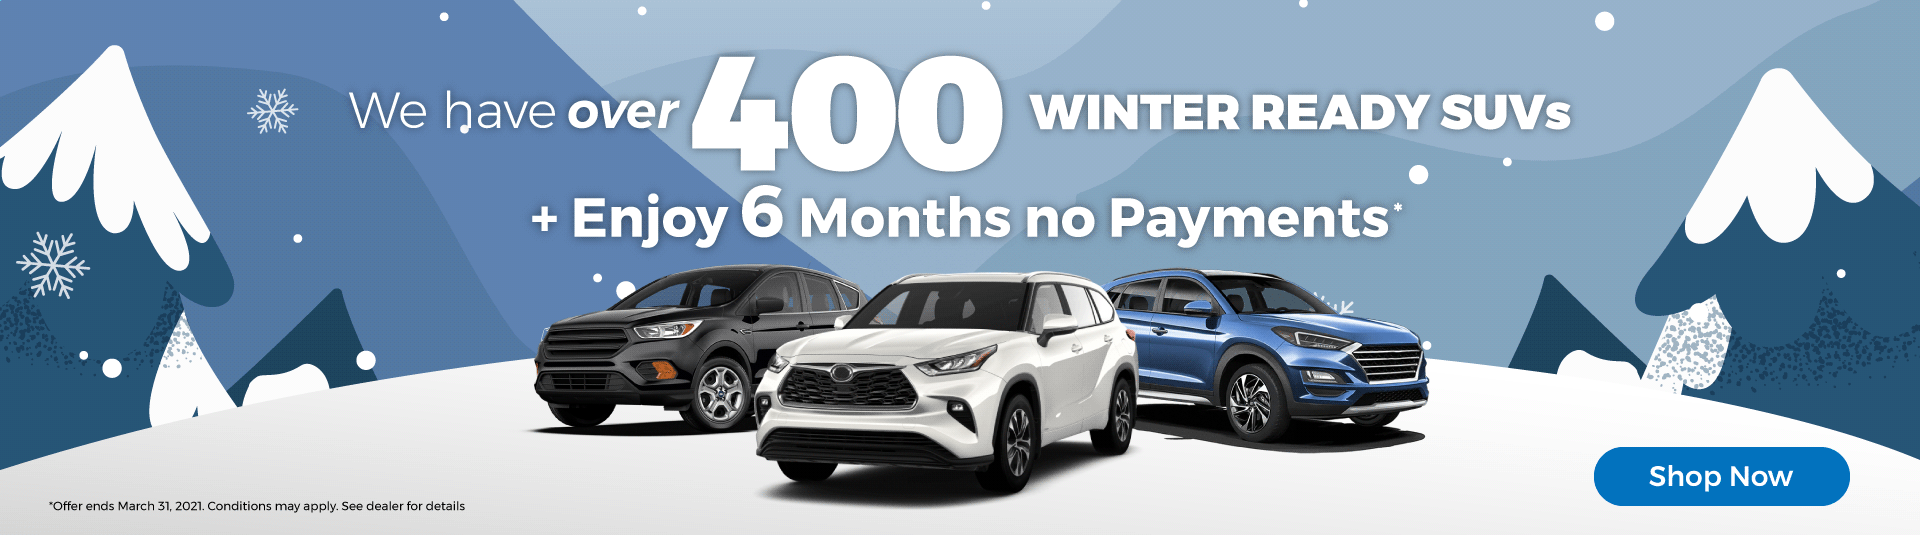 Winter ready SUVs Used Car Dealership Mississauga